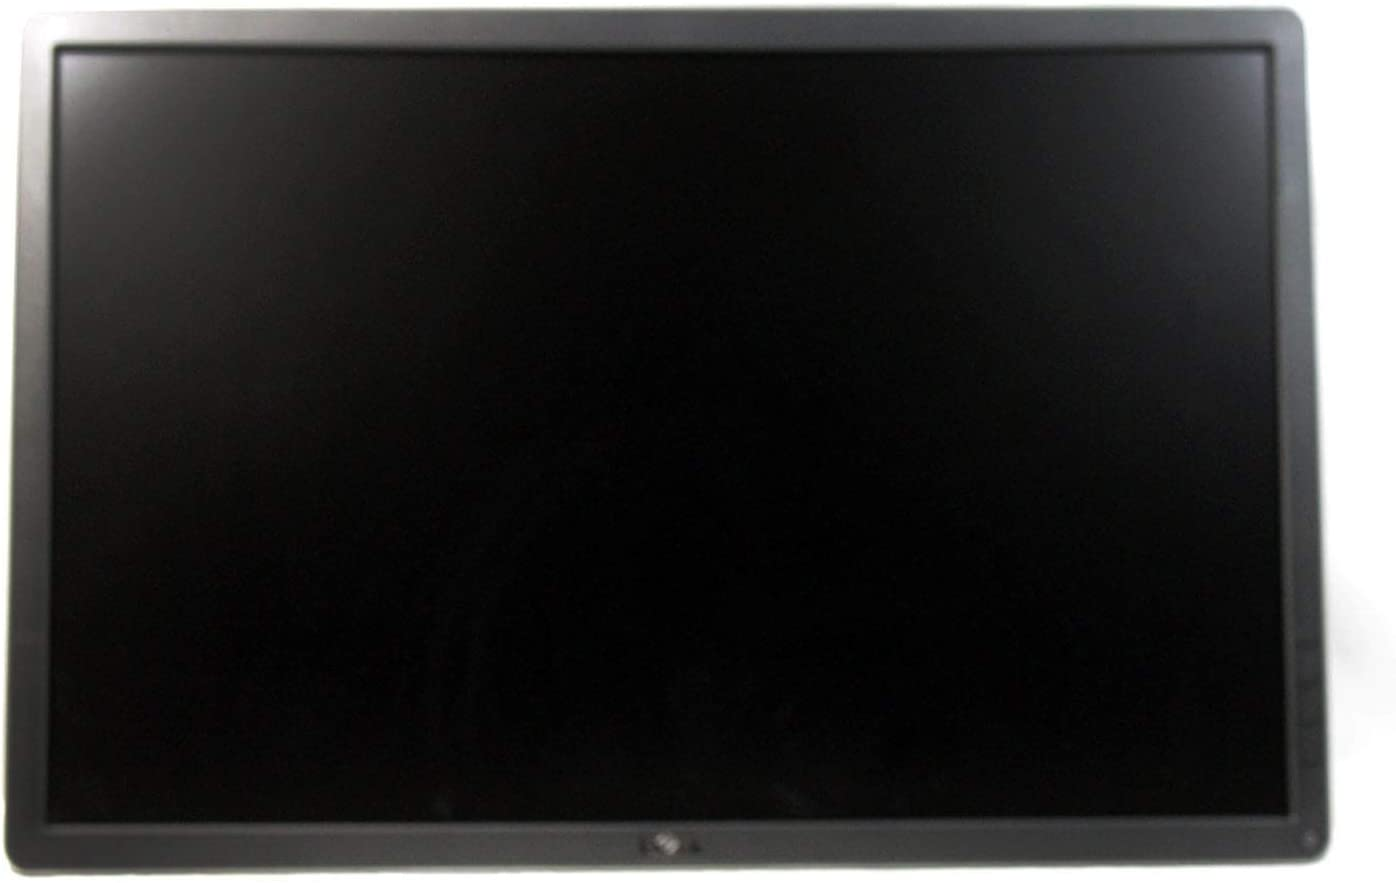 Dell Professional P2417H 24-Inch LED-Lit Monitor Adjustable Viewing Features Without Stand